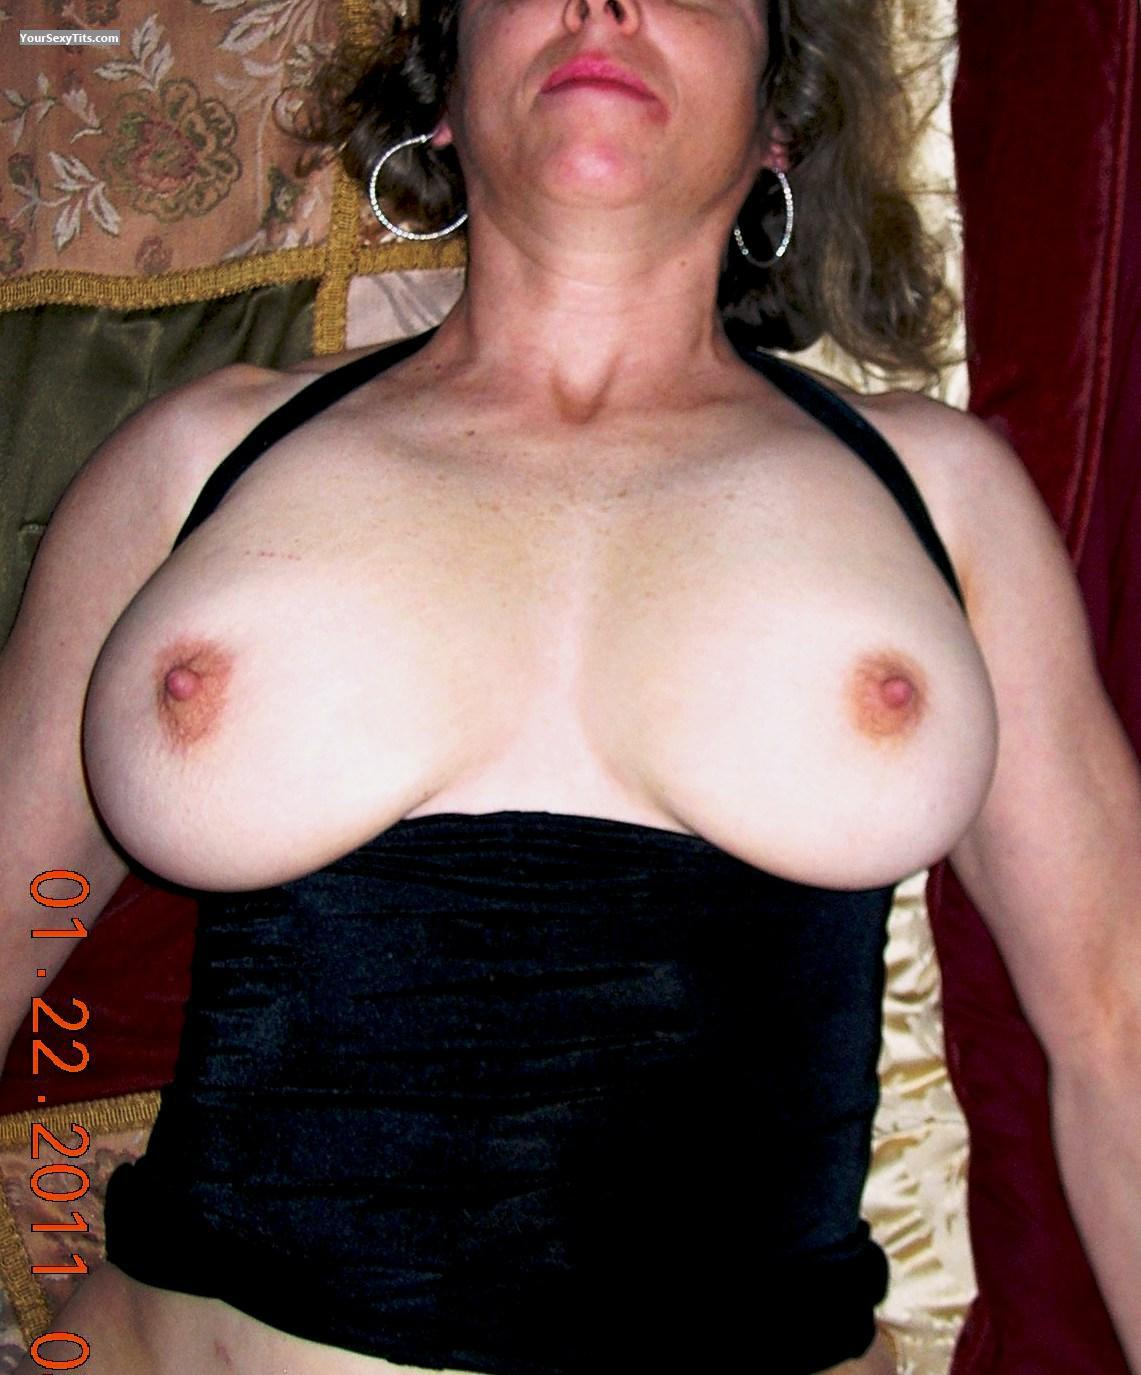 Tit Flash: Big Tits - Kat4you68 from United States